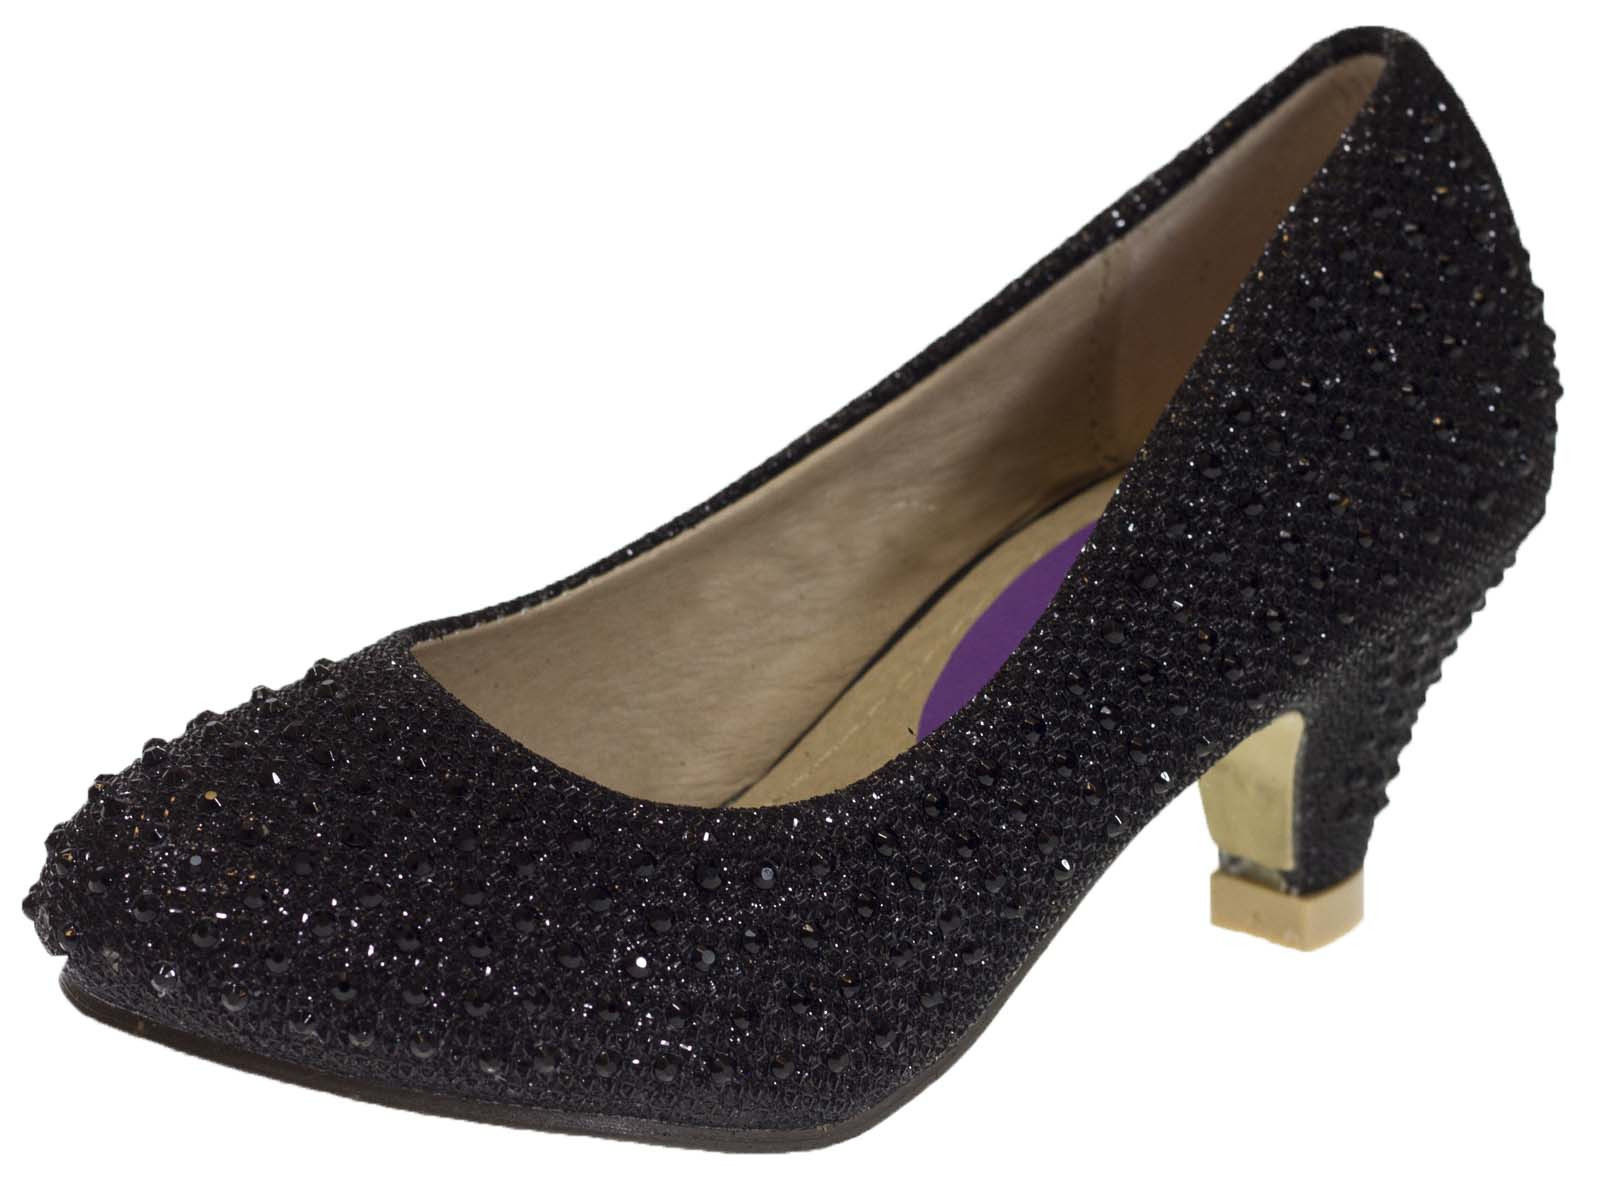 high heels for kids size 6 - photo #13